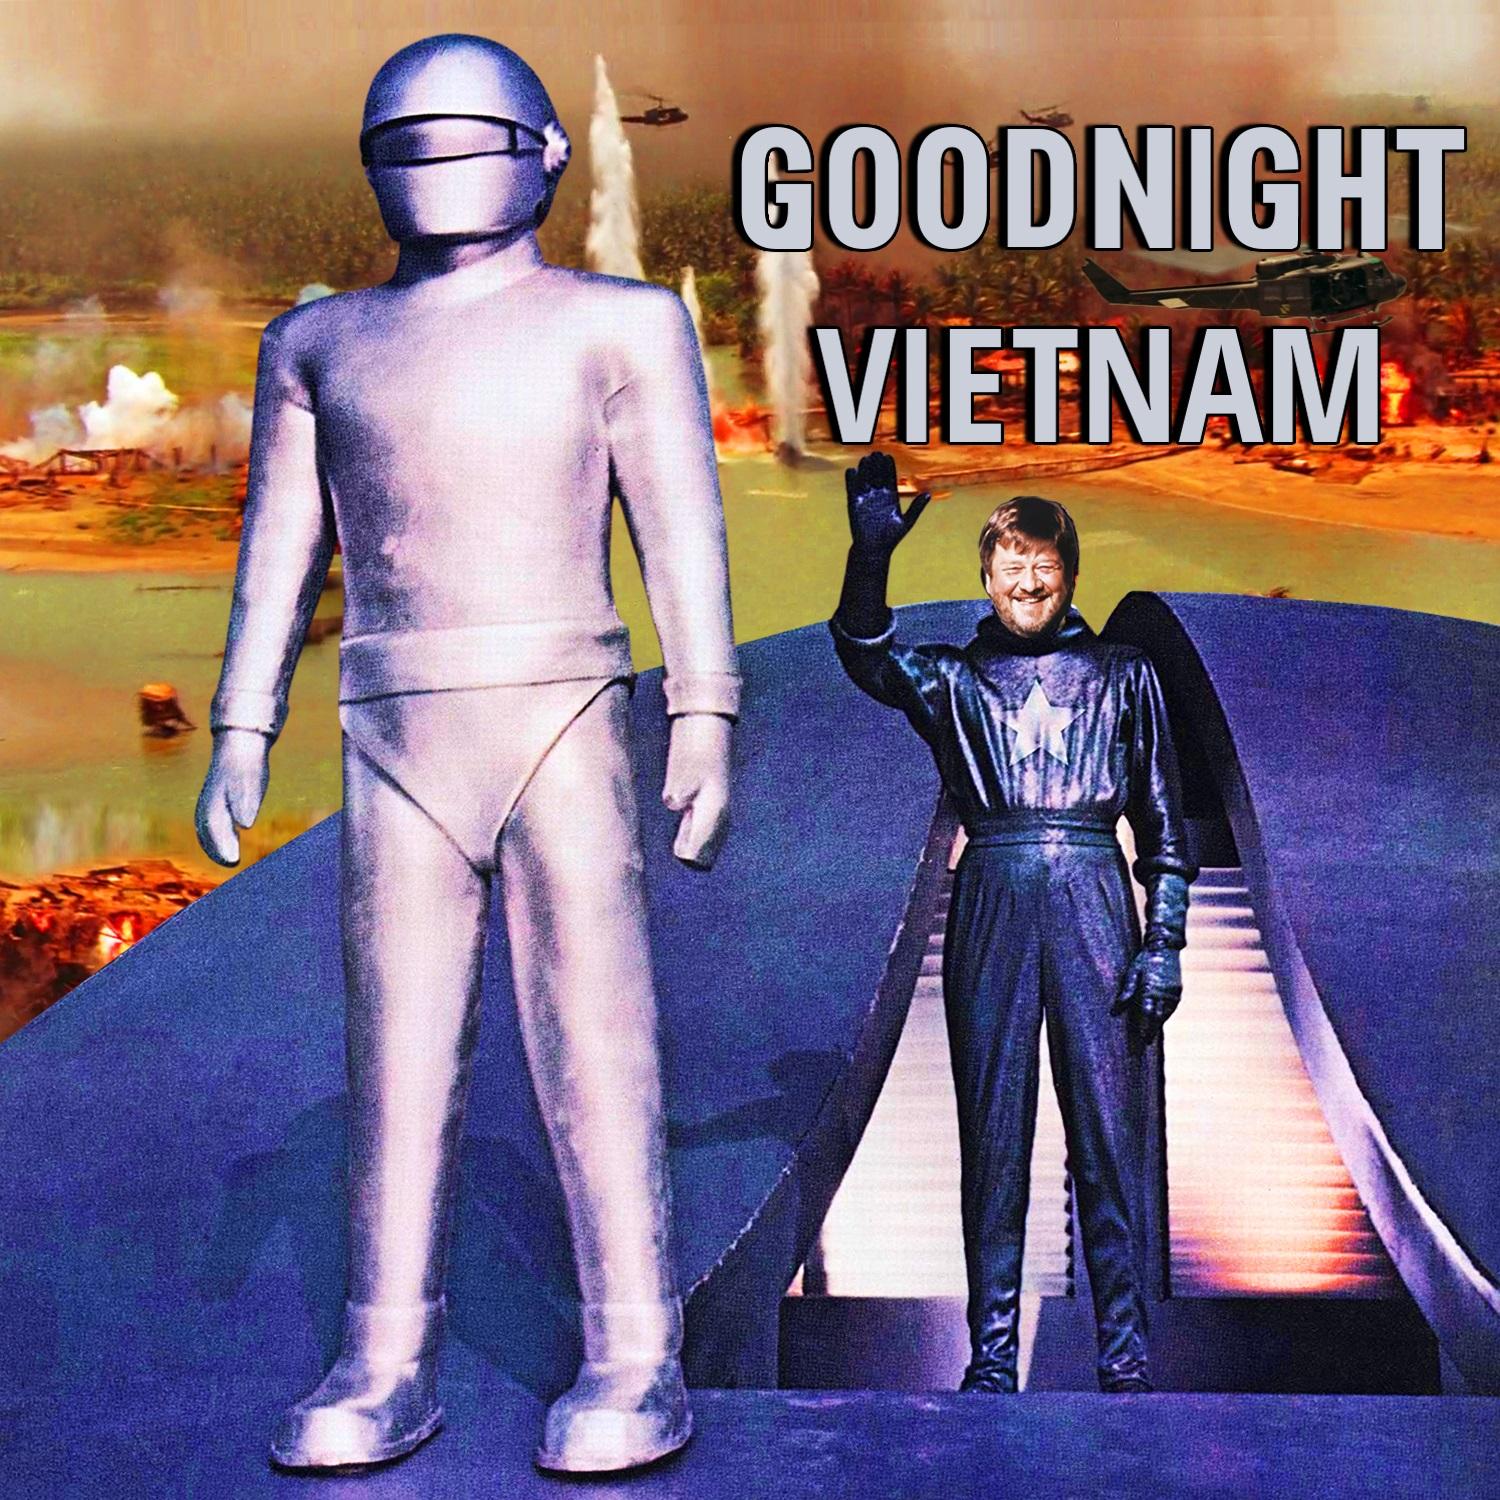 File:Goodnight-nam.jpg